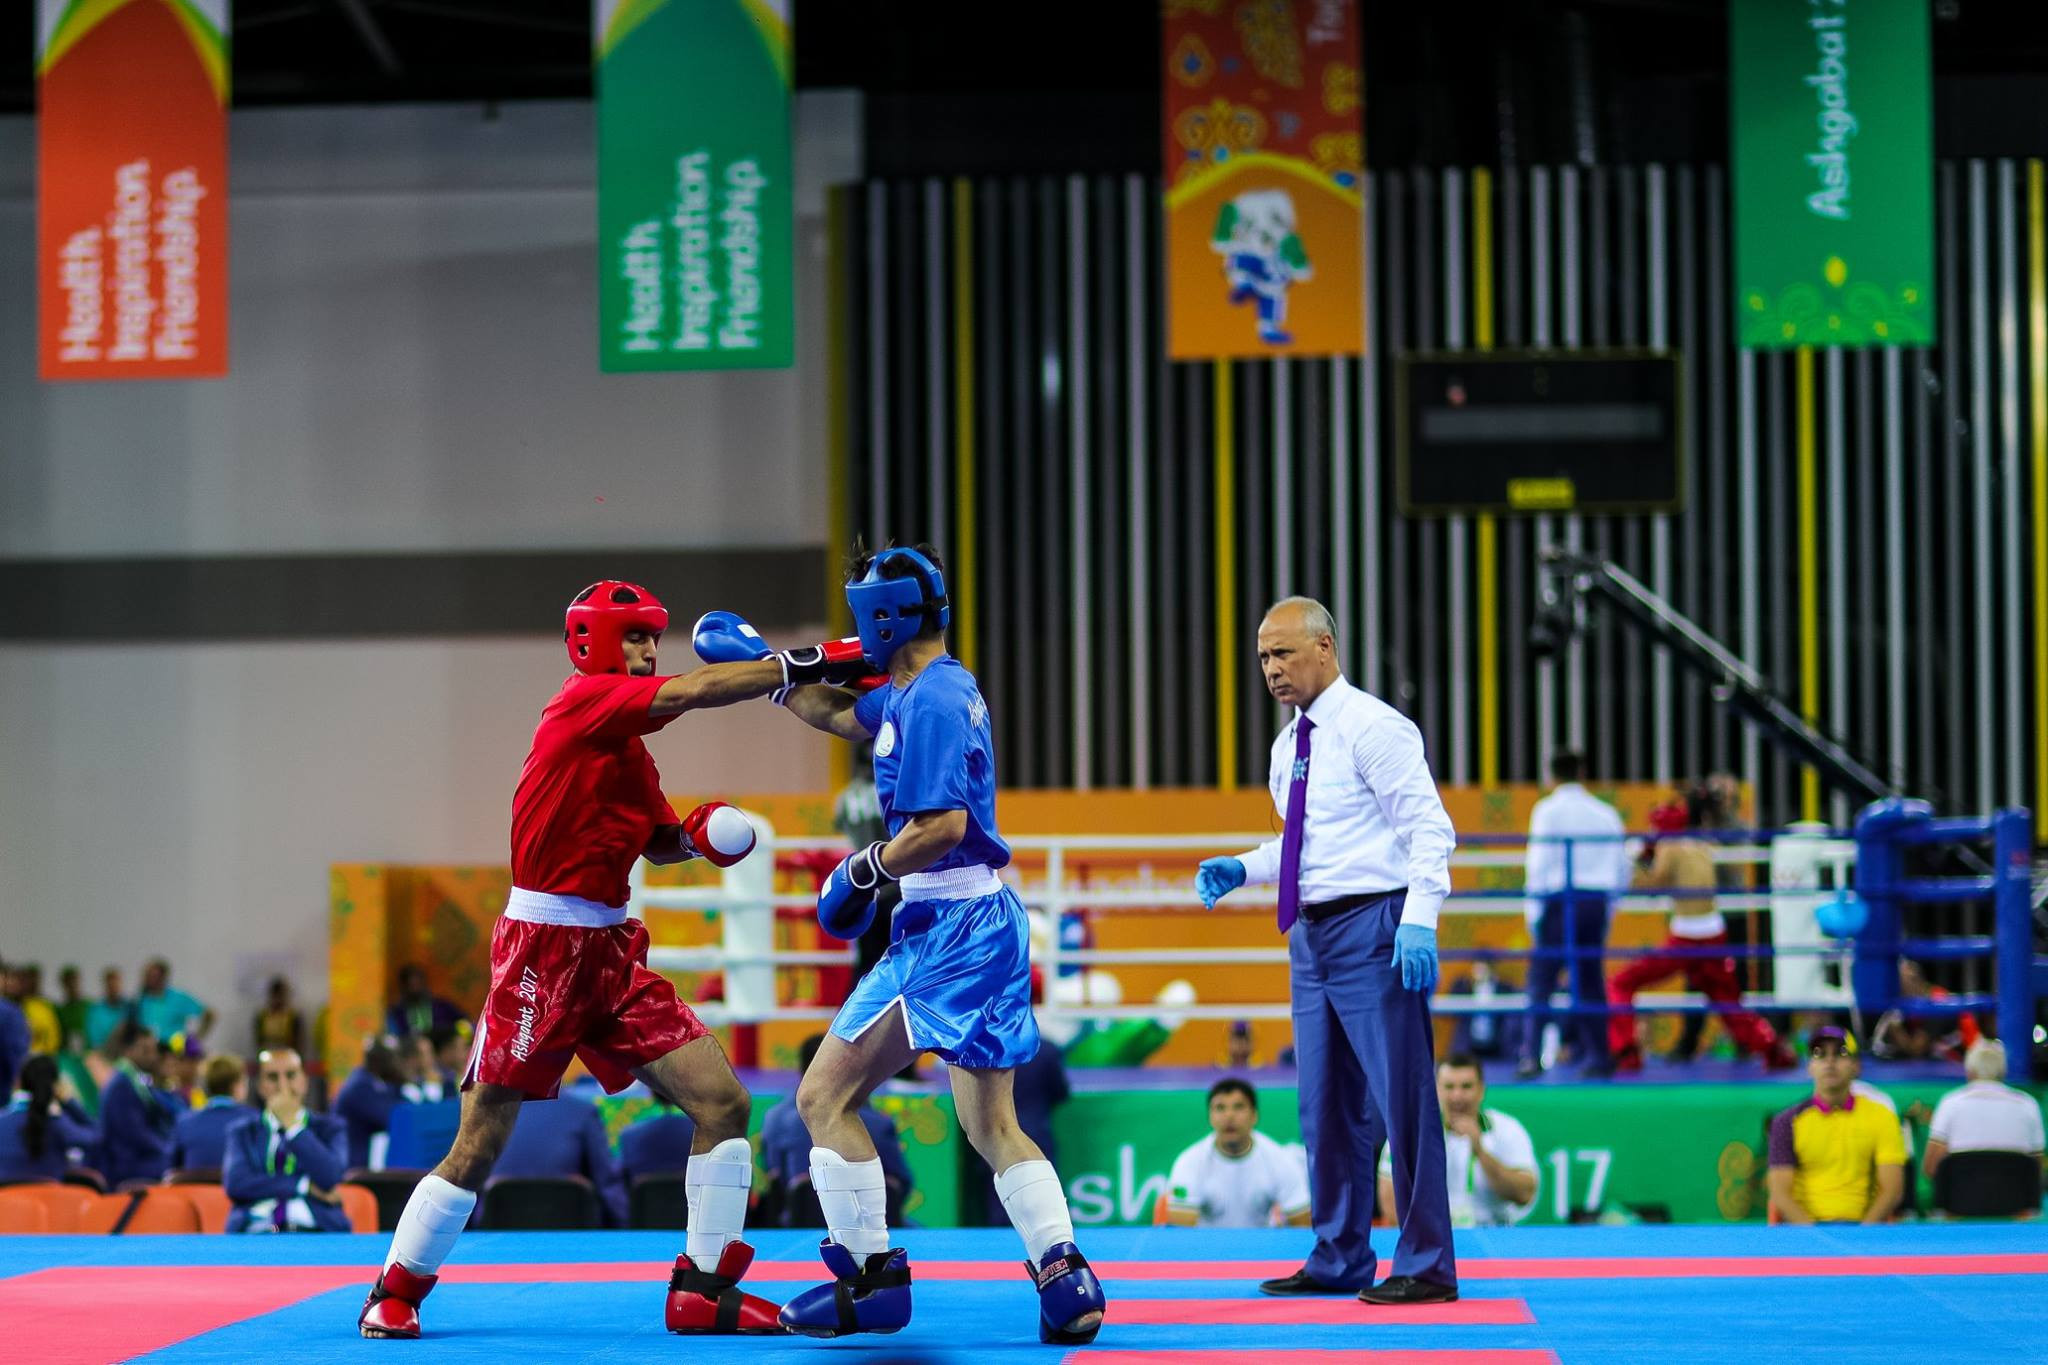 Medals were awarded on the second day of kickboxing action ©Ashgabat 2017/Facebook